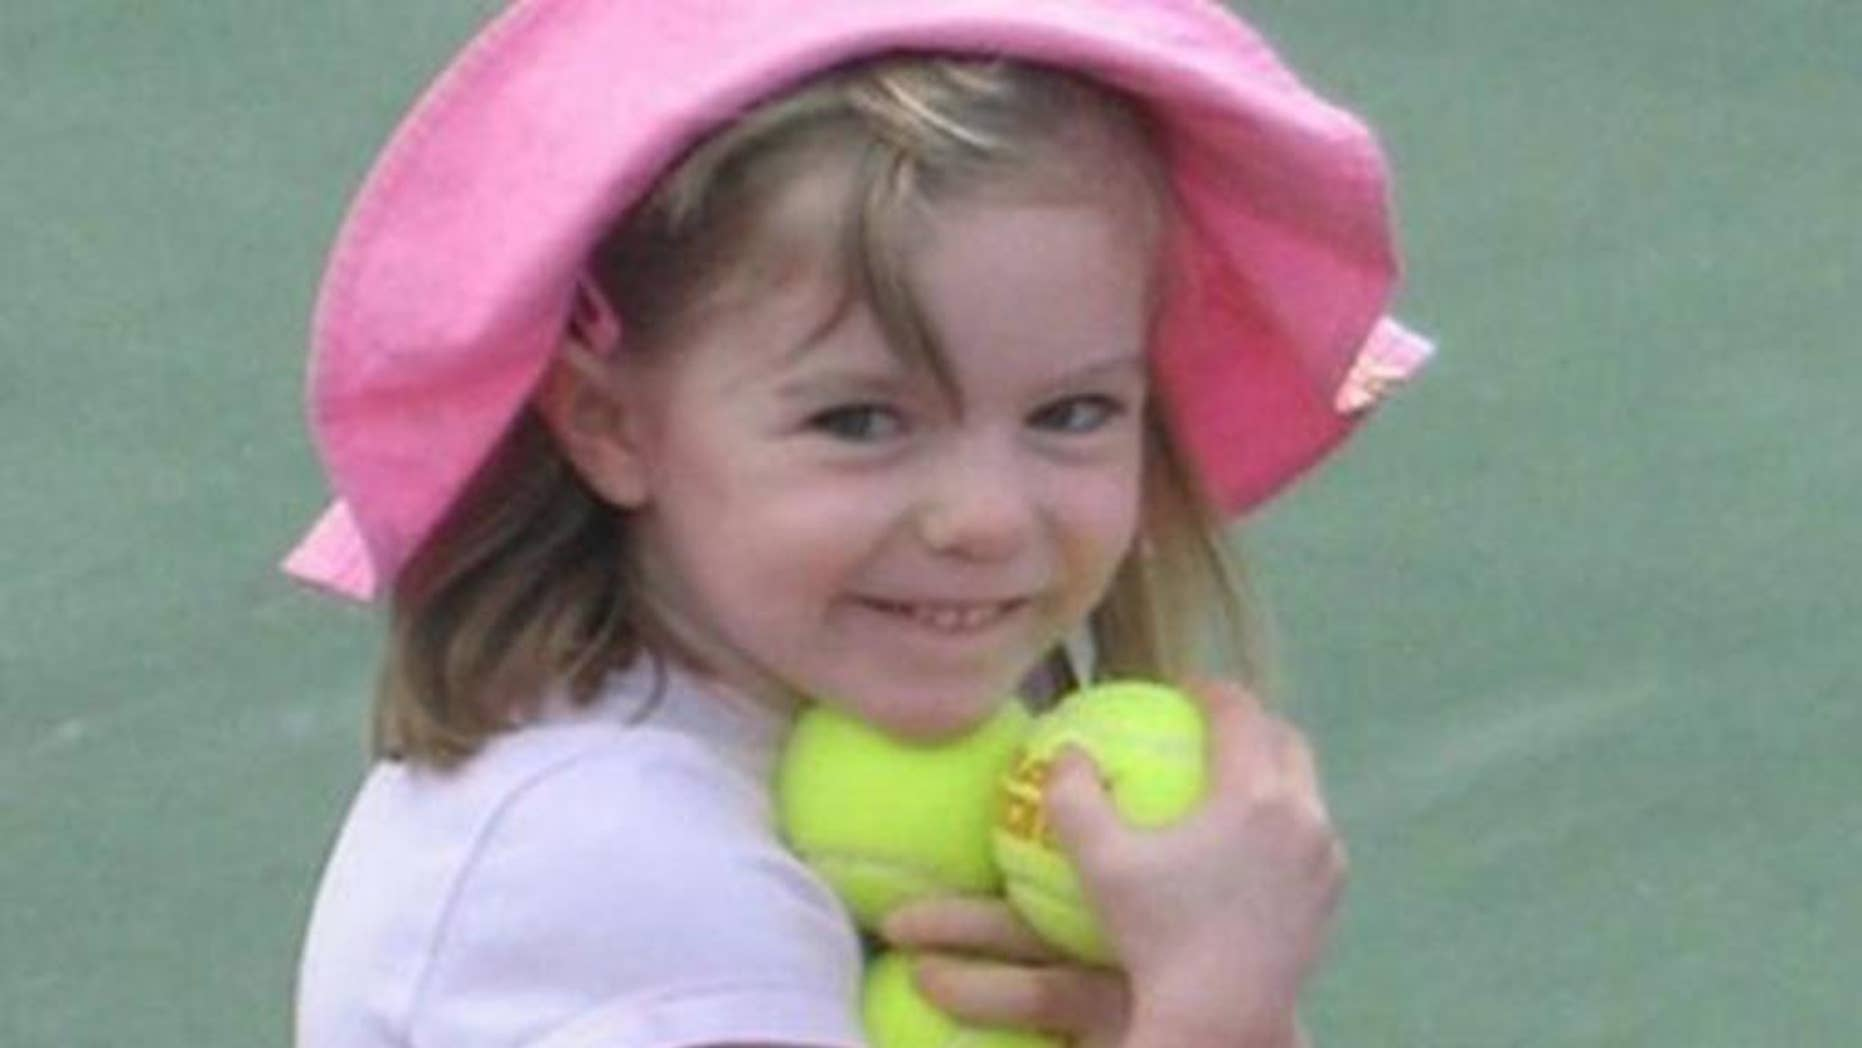 FILE - This undated  file photo made available by the London Metropolitan Police, shows missing British girl Madeleine McCann before she went missing from a Portuguese holiday complex .  British police investigating the disappearance of Madeleine McCann said Wednesday March 19, 2014, they are seeking an intruder who sexually assaulted five girls in the region of southern Portugal where the British toddler was last seen.  (AP Photo/London Metropolitan Police)